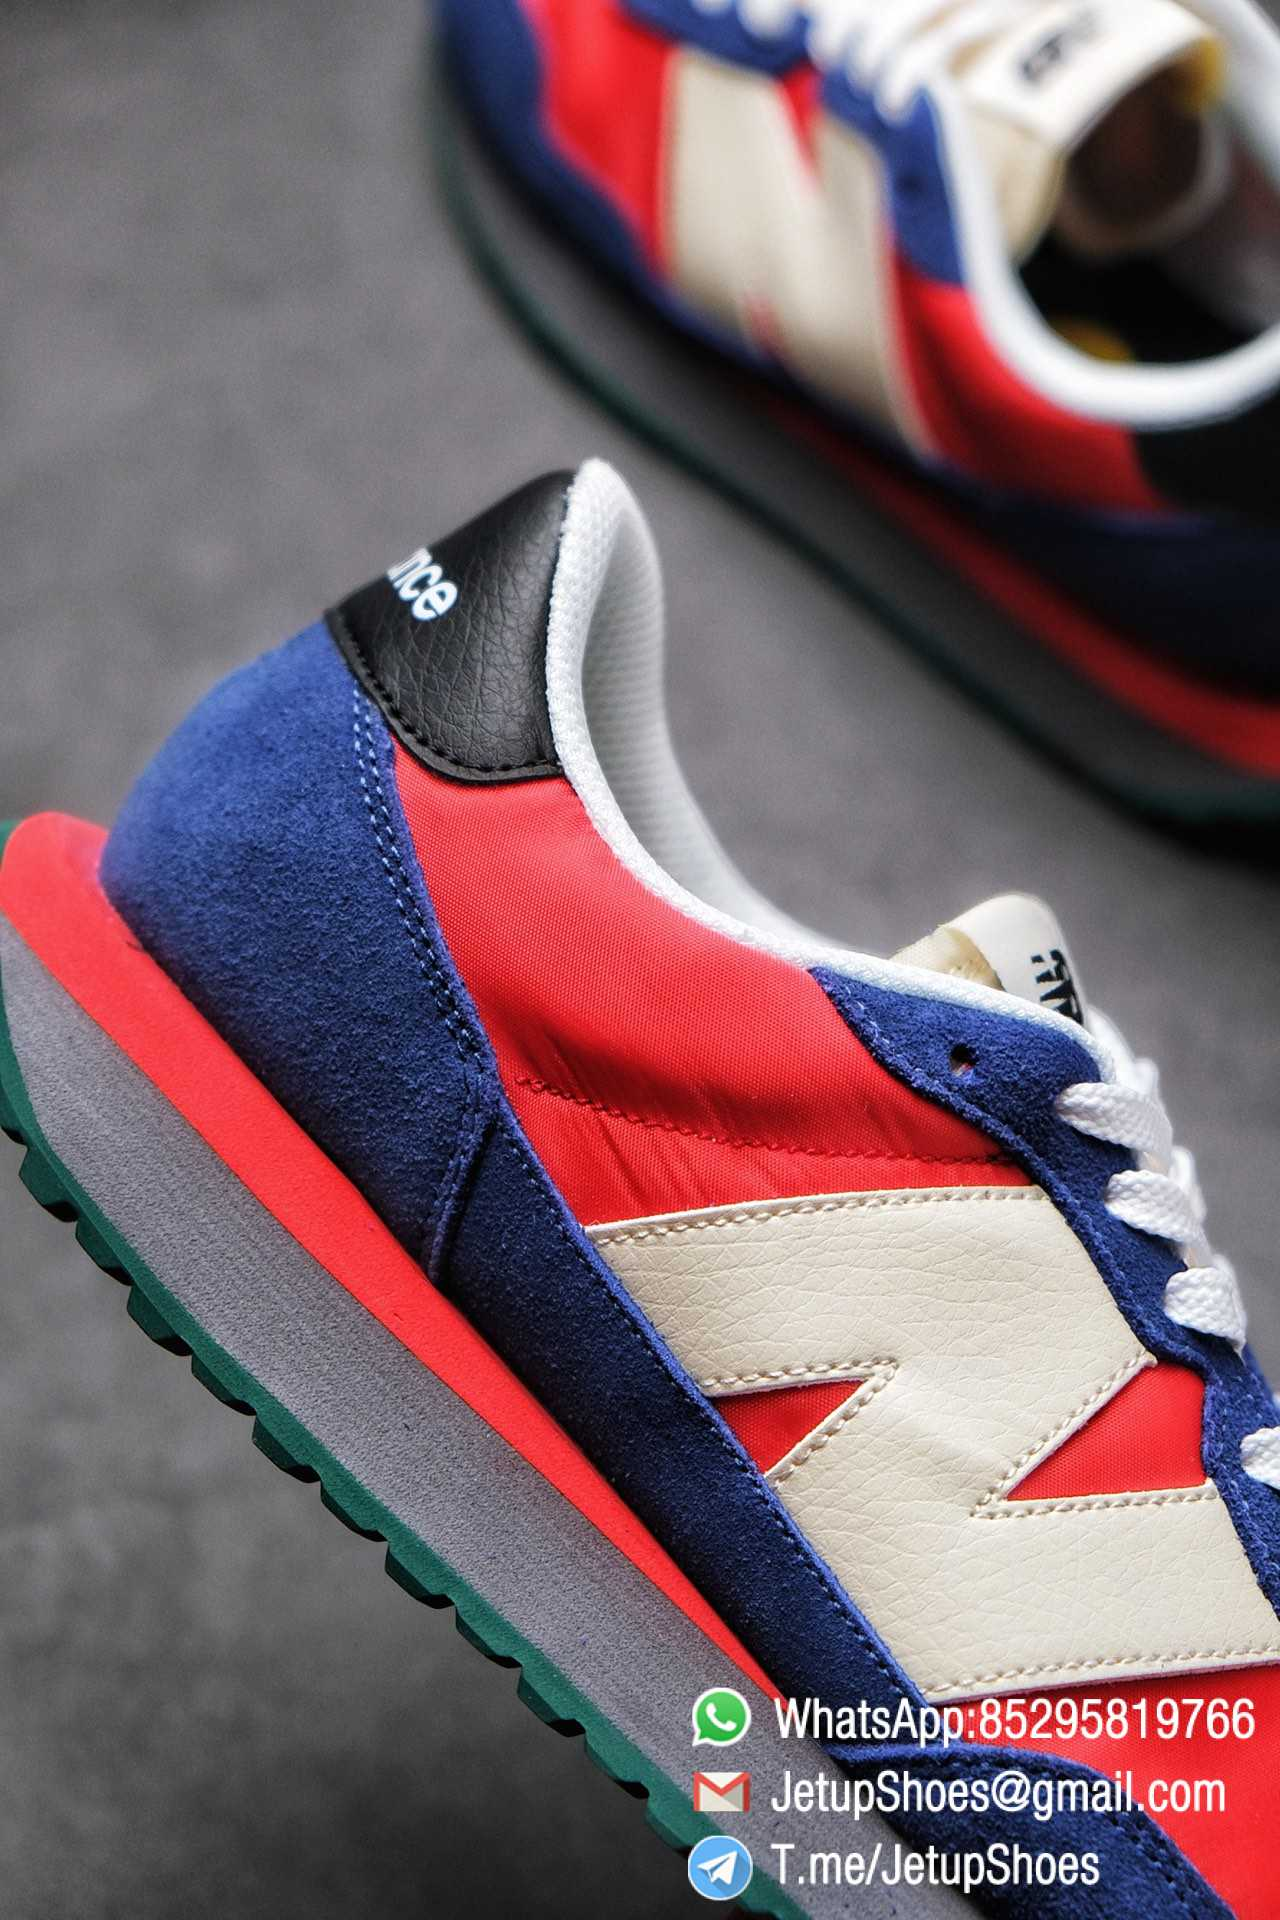 Best Replica New Balance 237 Blue Red SKU MS237LA2 High Quality Fake Sneakers 06 1